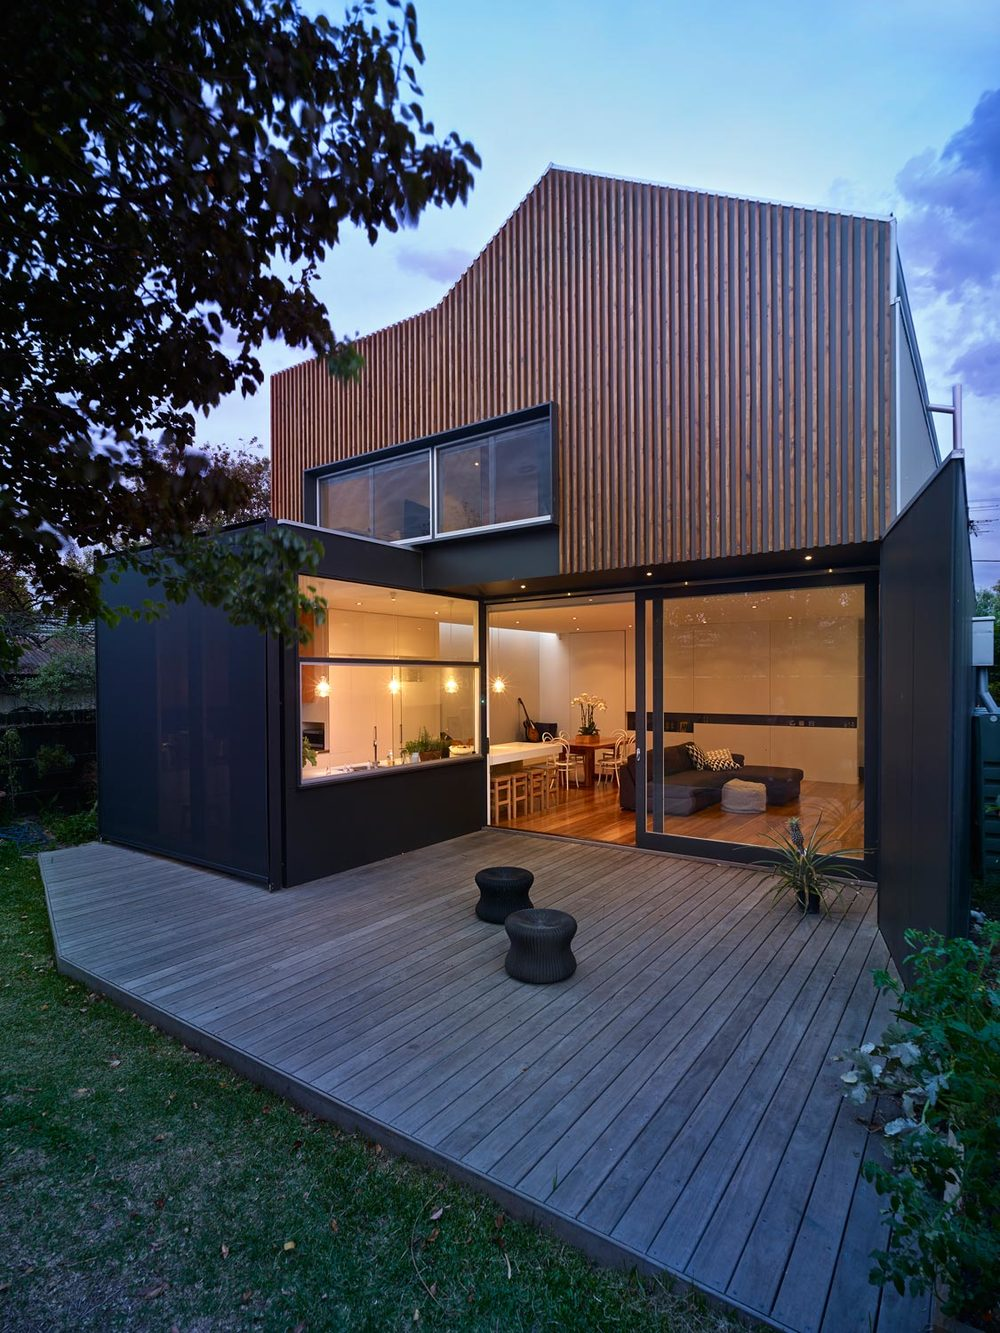 northcote-house-renovation-by-warc-studio-01.jpg